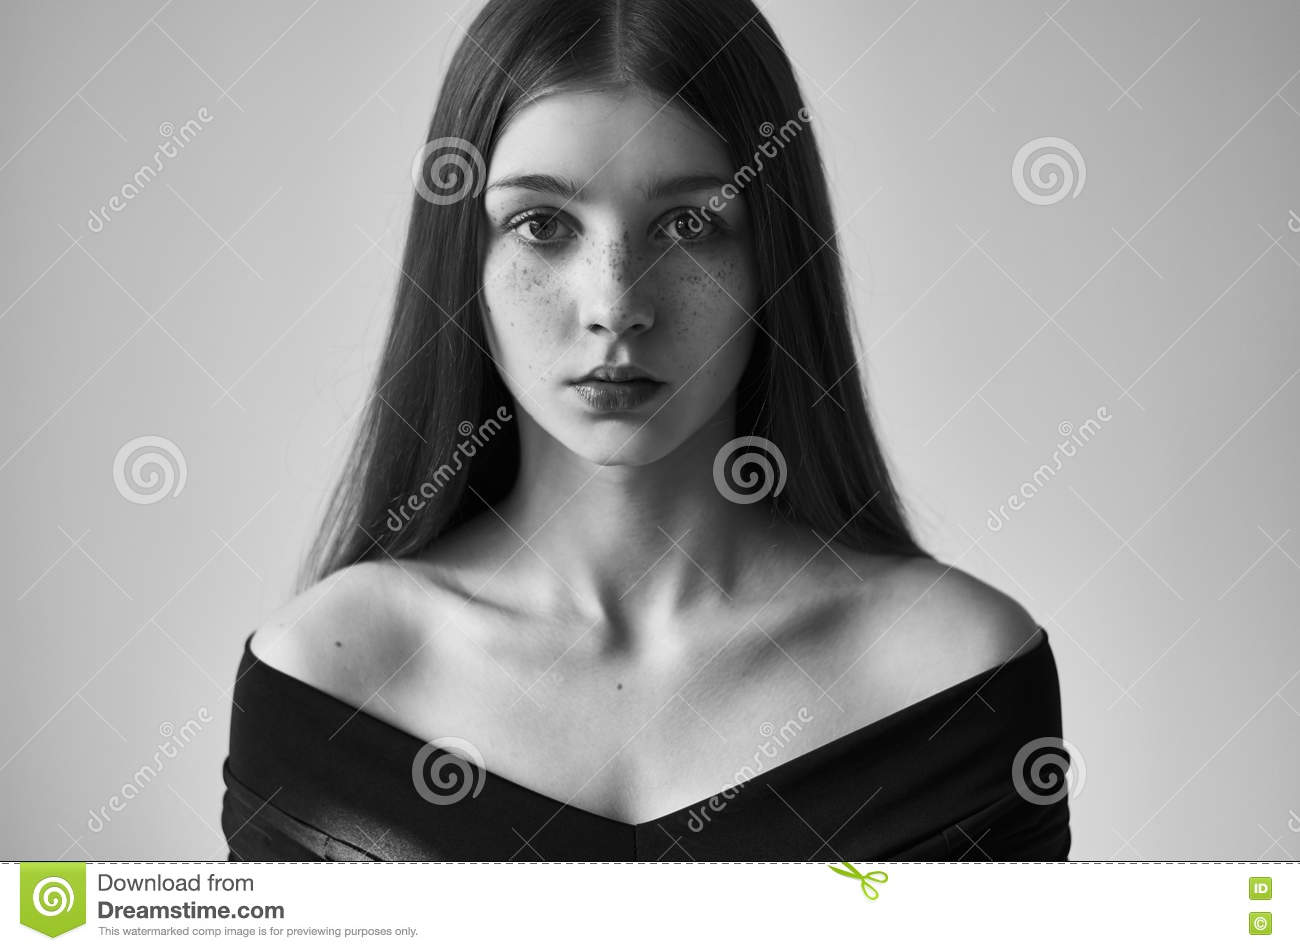 Dramatic black and white portrait of a beautiful lonely girl with freckles isolated on a white background in studio